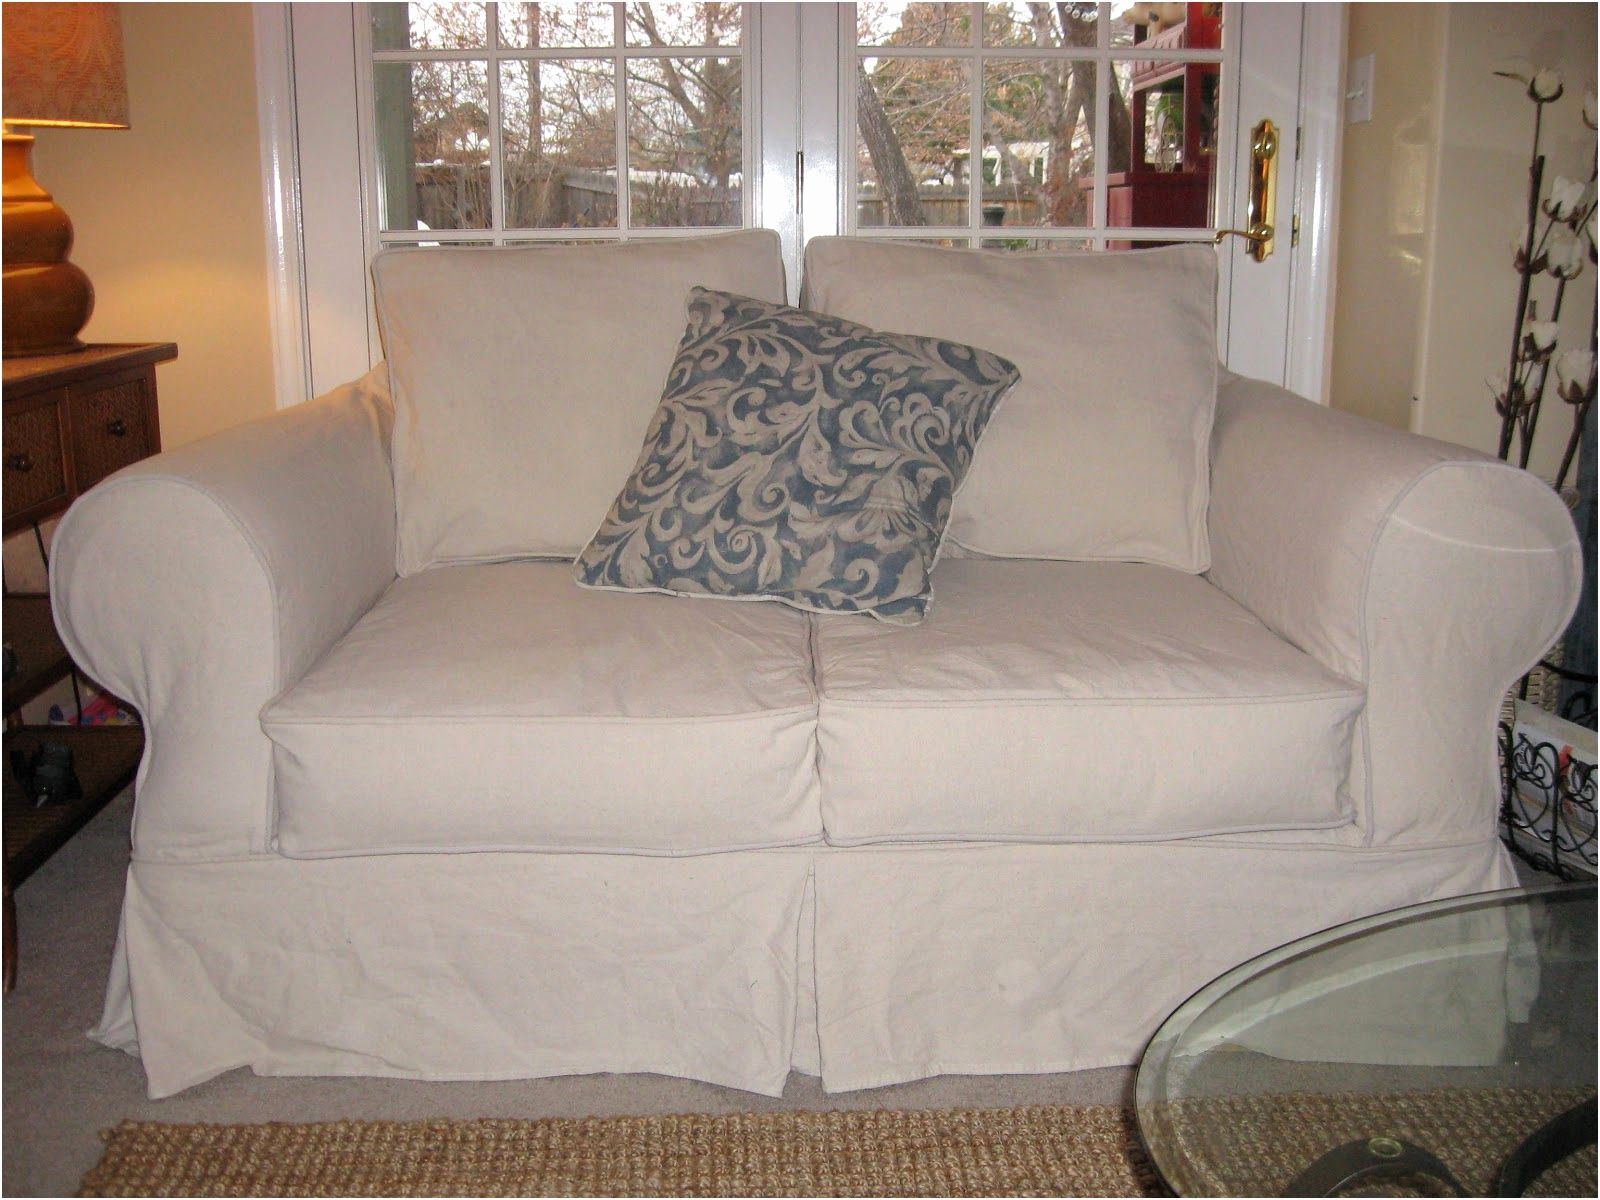 Sofa Covers At Walmart Picture Sofa Covers At Walmart Fresh Inspirational 3 Piece Sofa Covers Beautiful Sofa Furniture Sofa Covers Beautiful Sofas 3 Piece Sofa